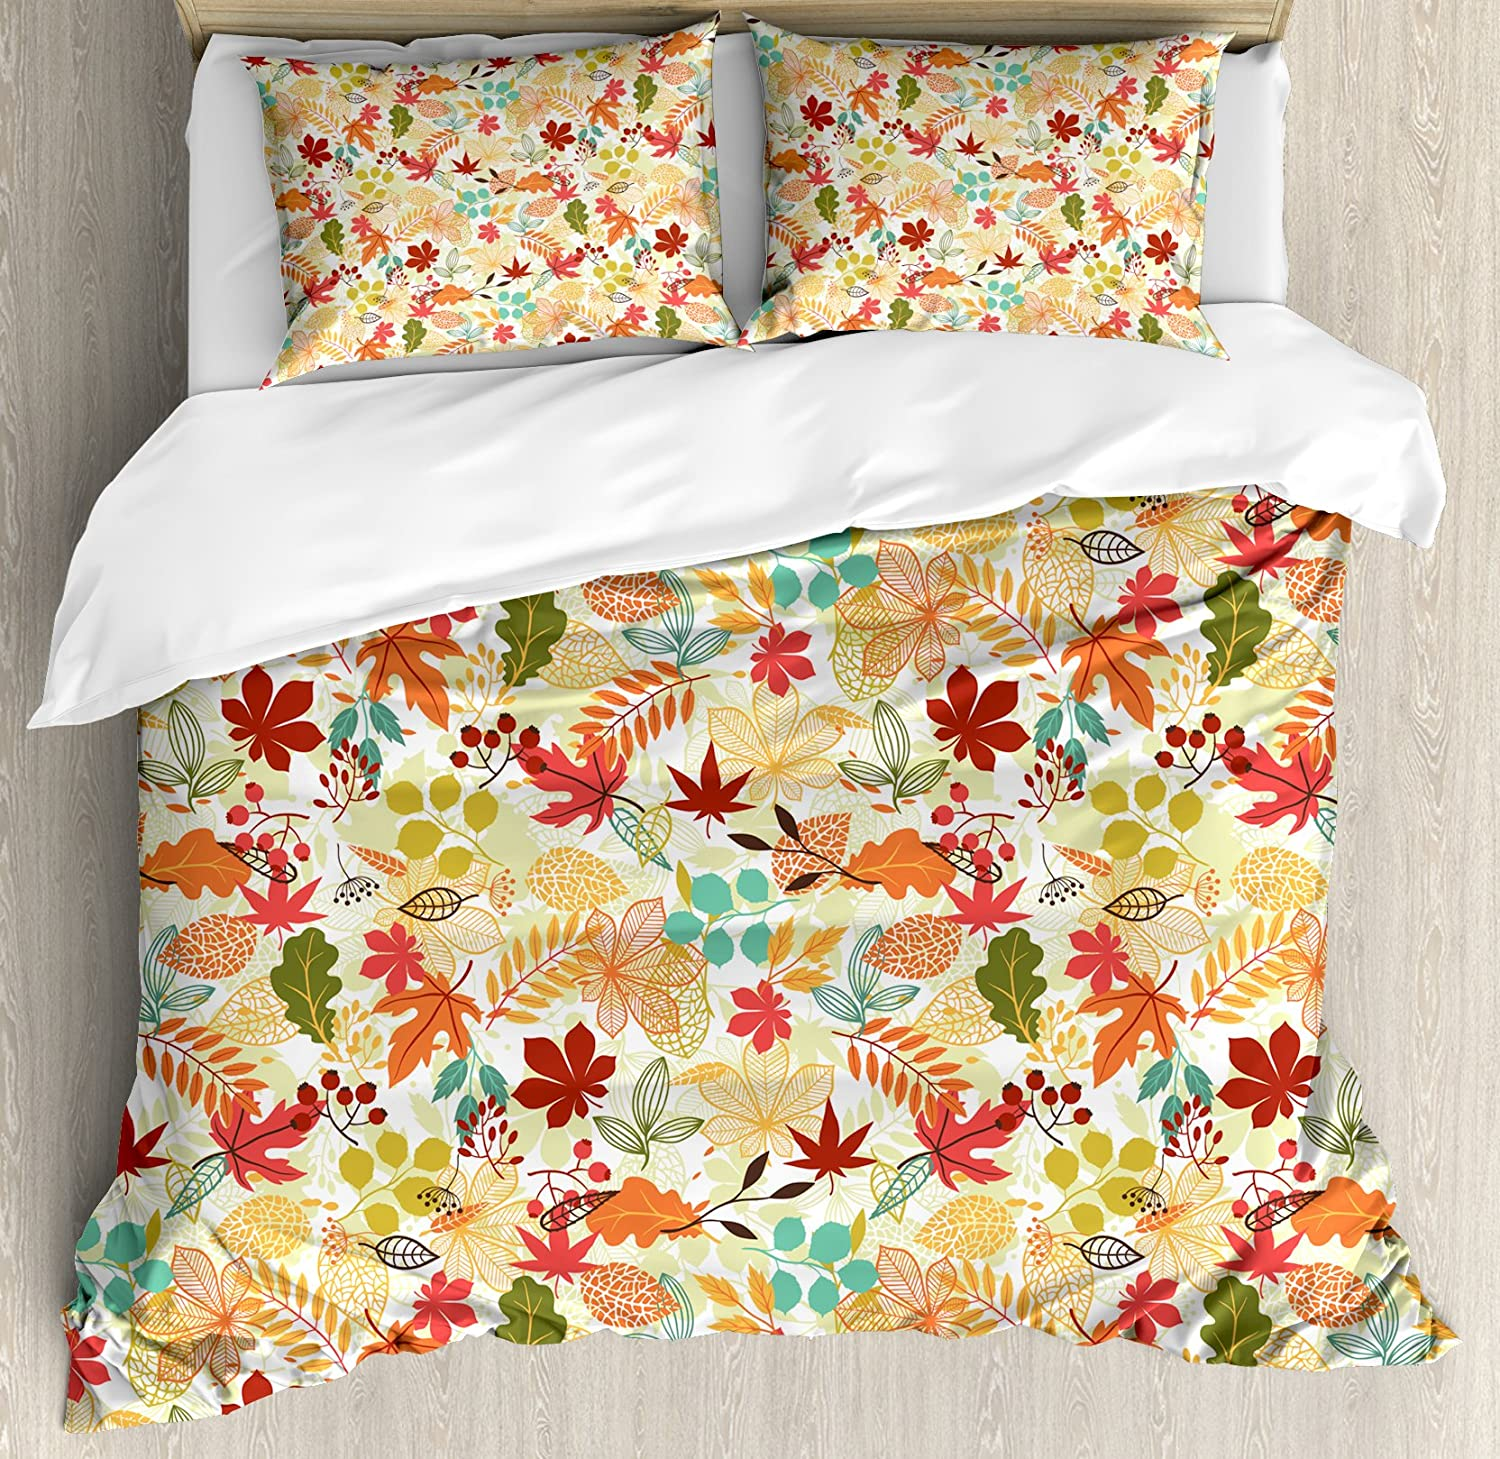 Lunarable Thanksgiving Duvet Cover Set Queen Size